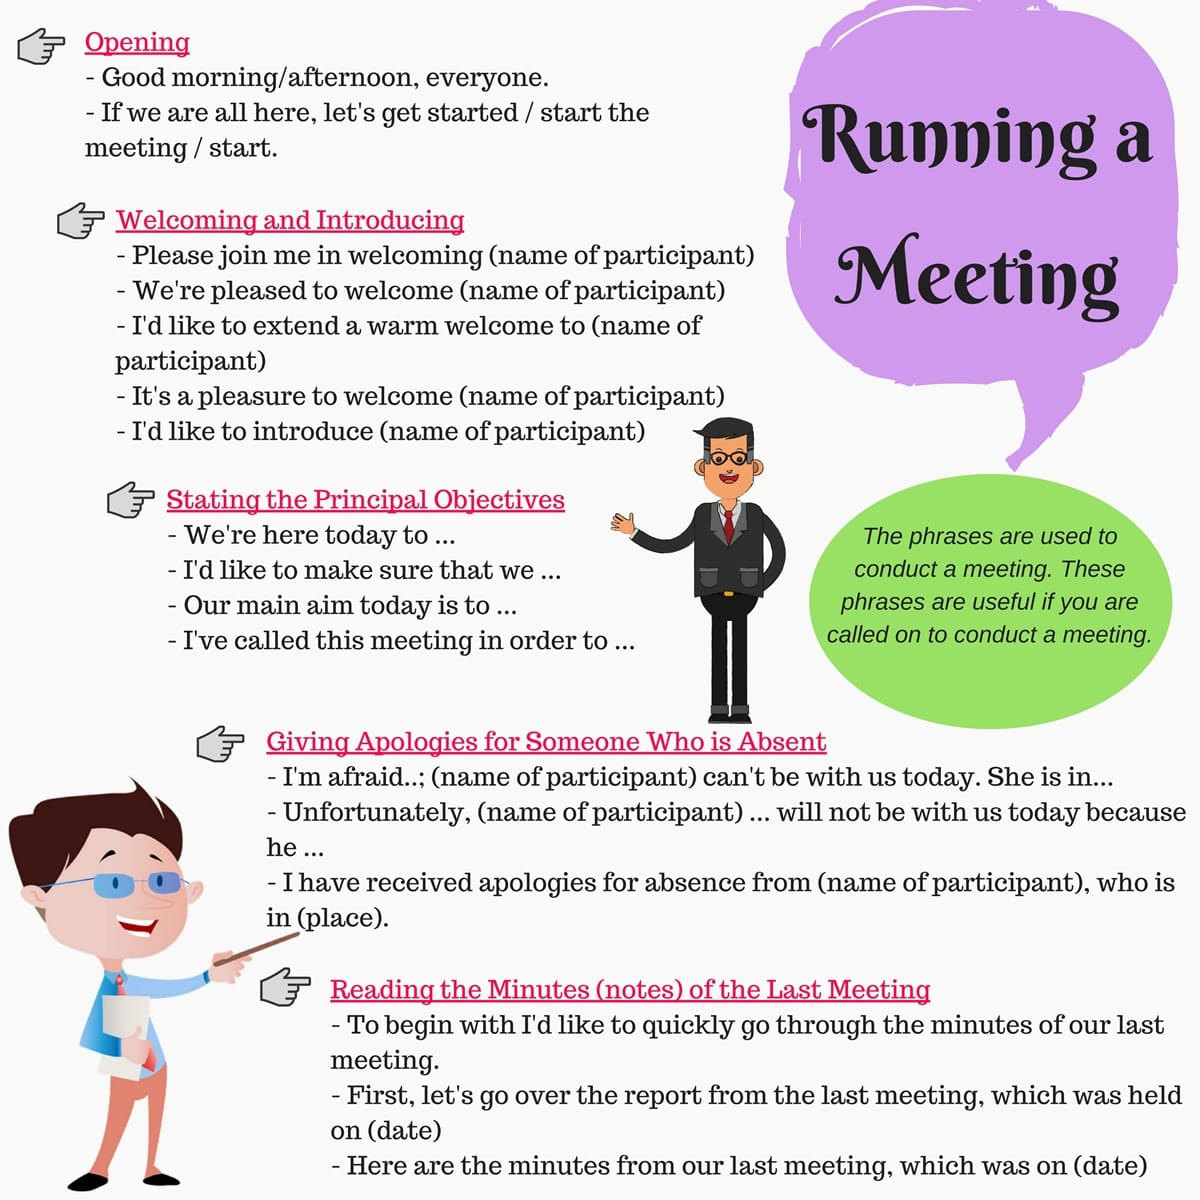 phrases to use during a business meeting